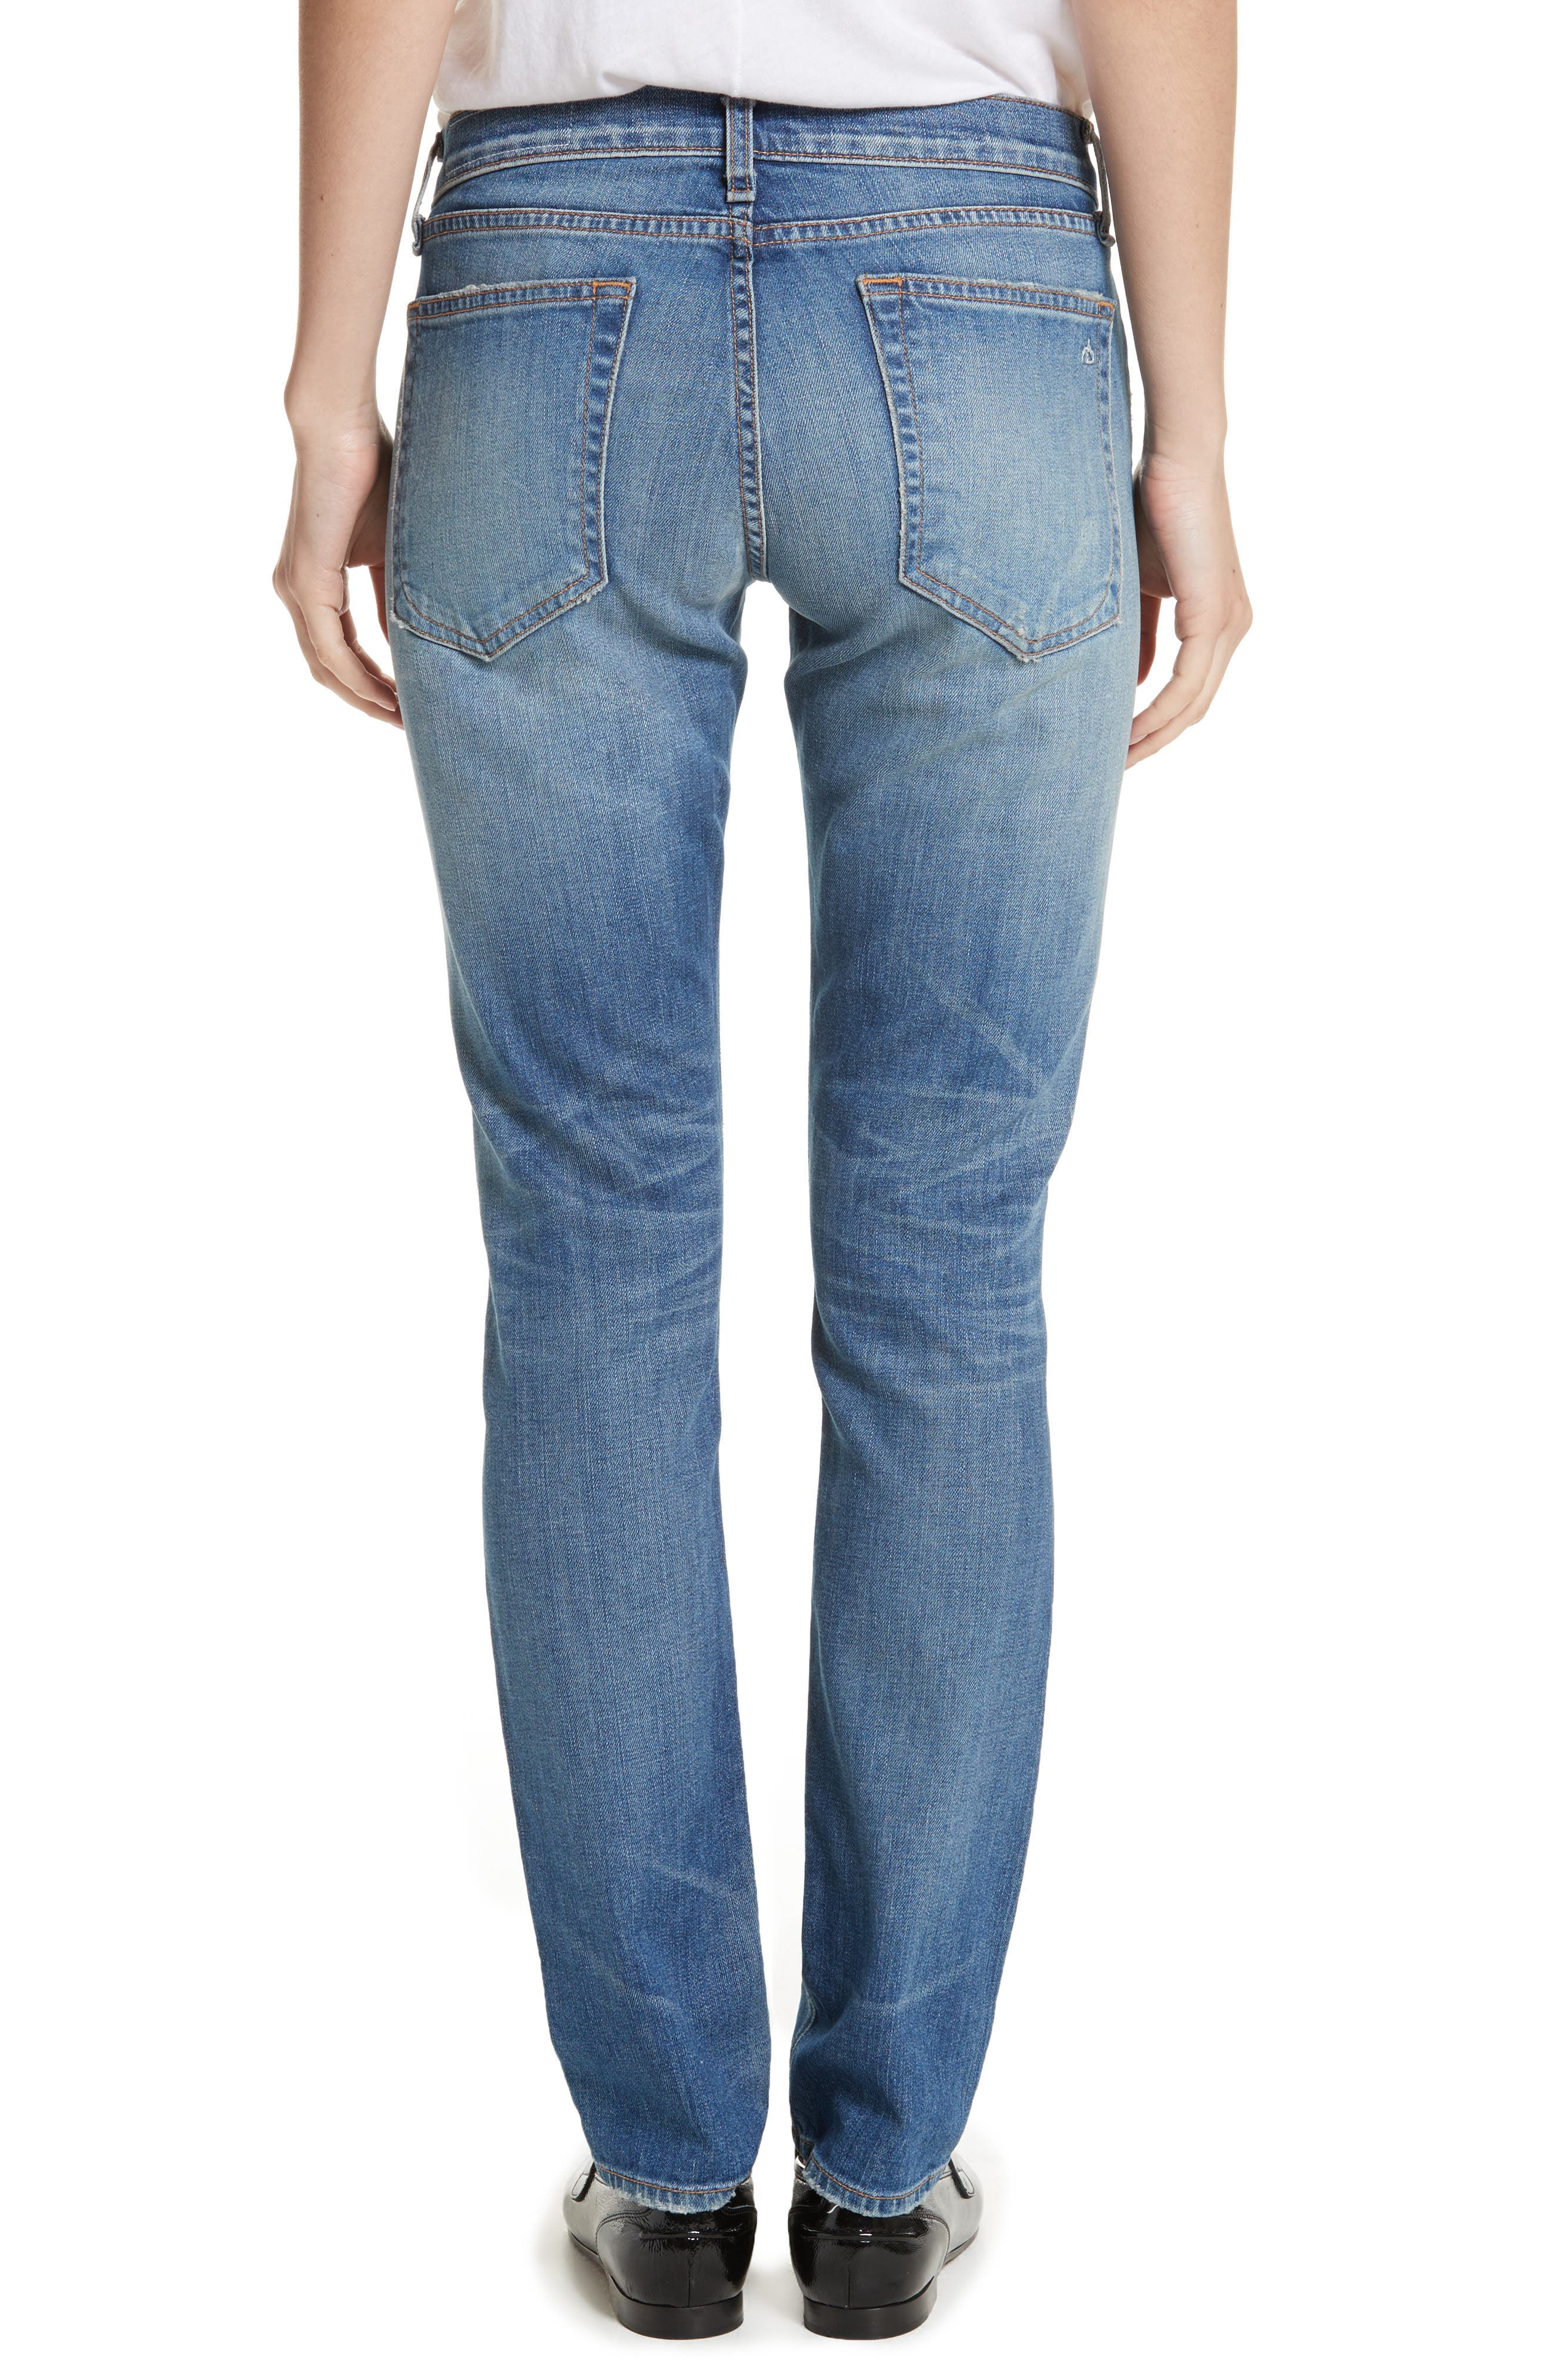 Dre Slim Boyfriend Jeans,                             Alternate thumbnail 2, color,                             420